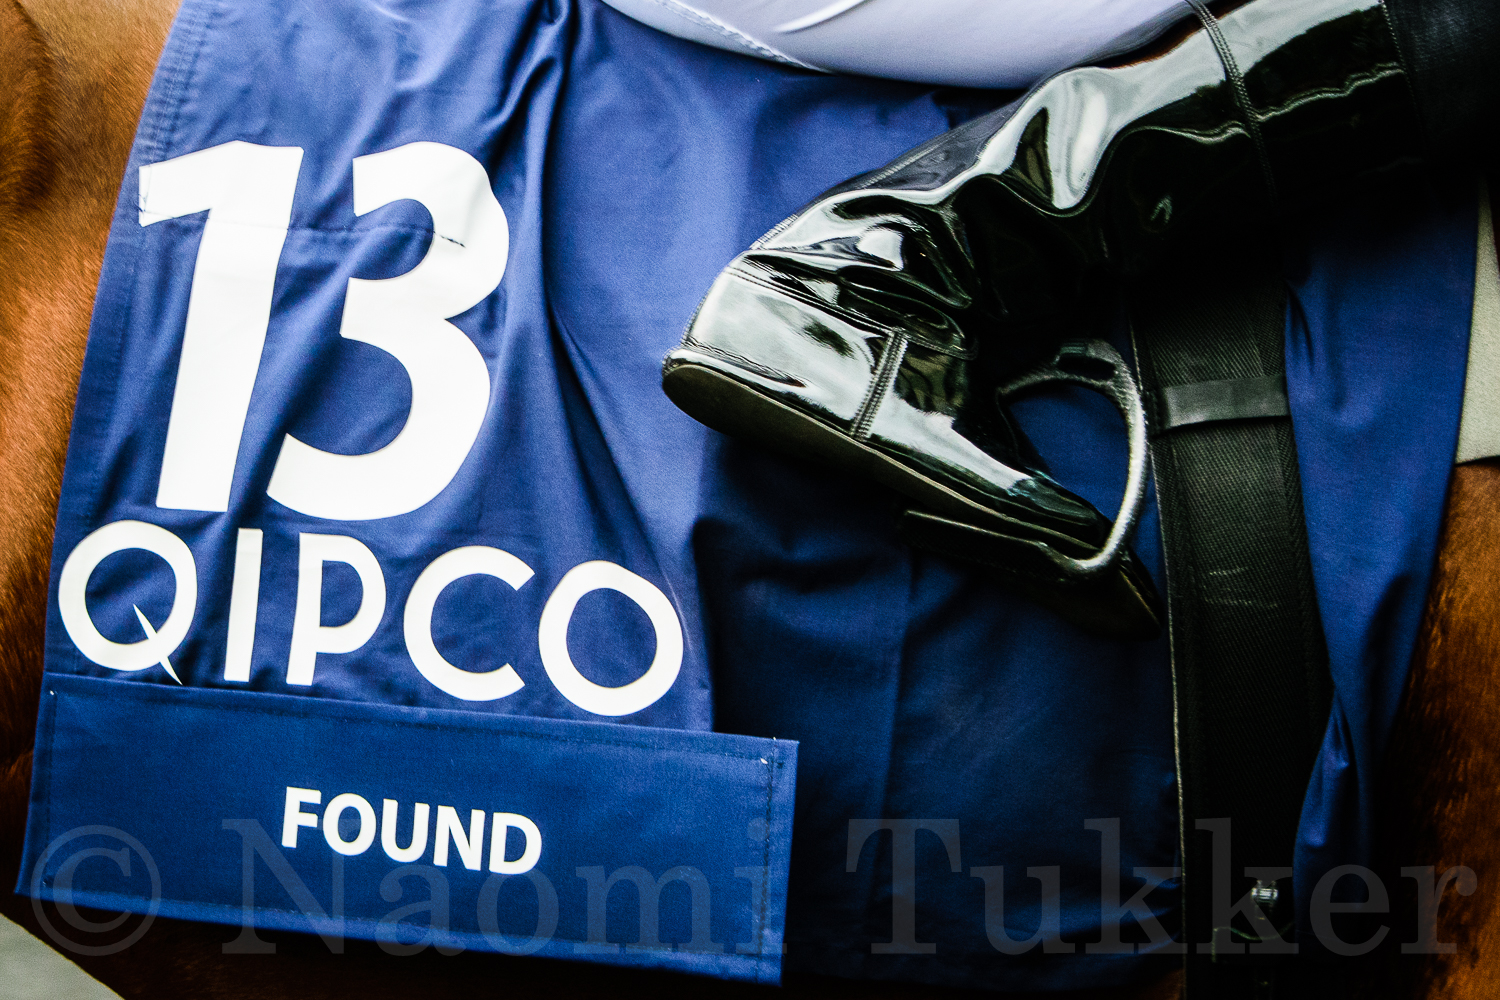 A day of Champions: the events at Ascot